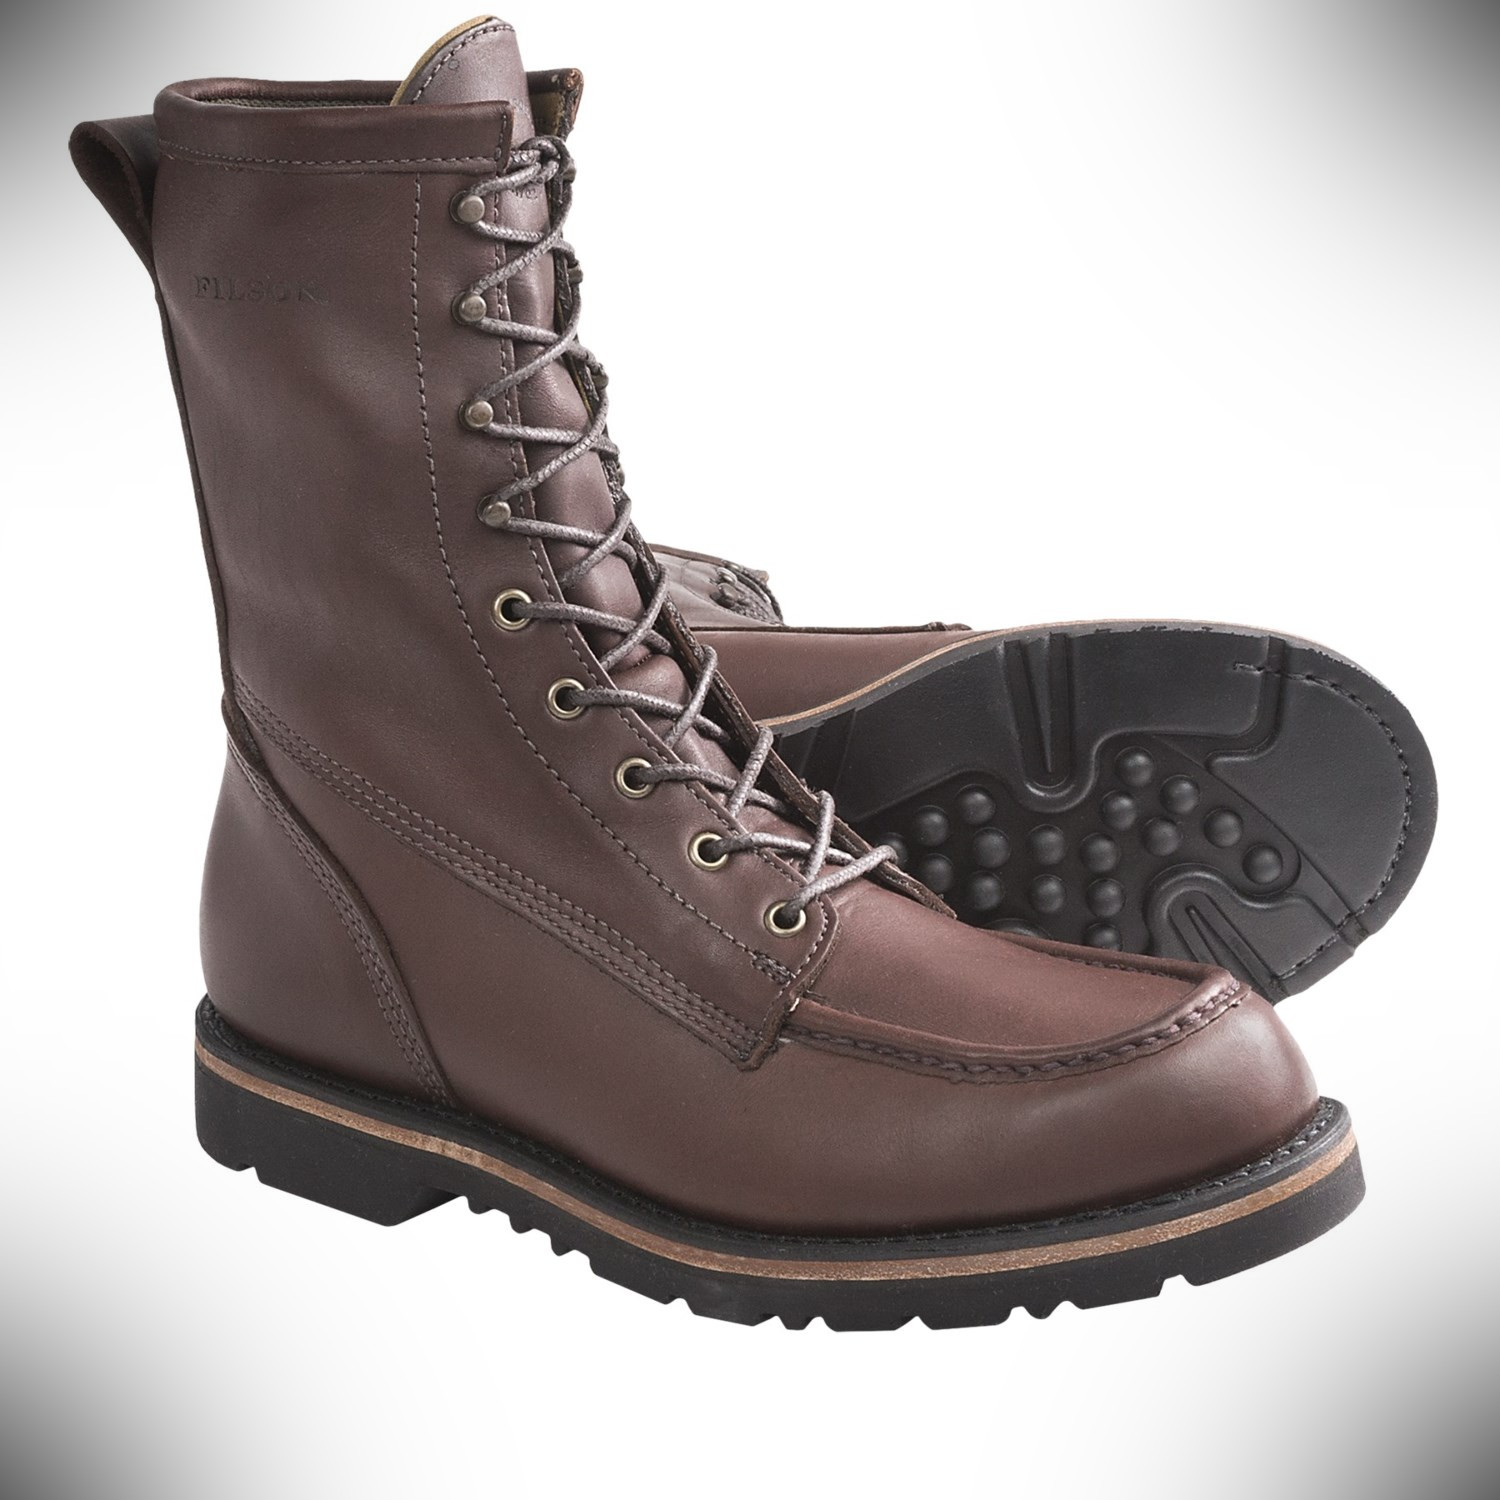 Filson Uplander – waterproof boots for men